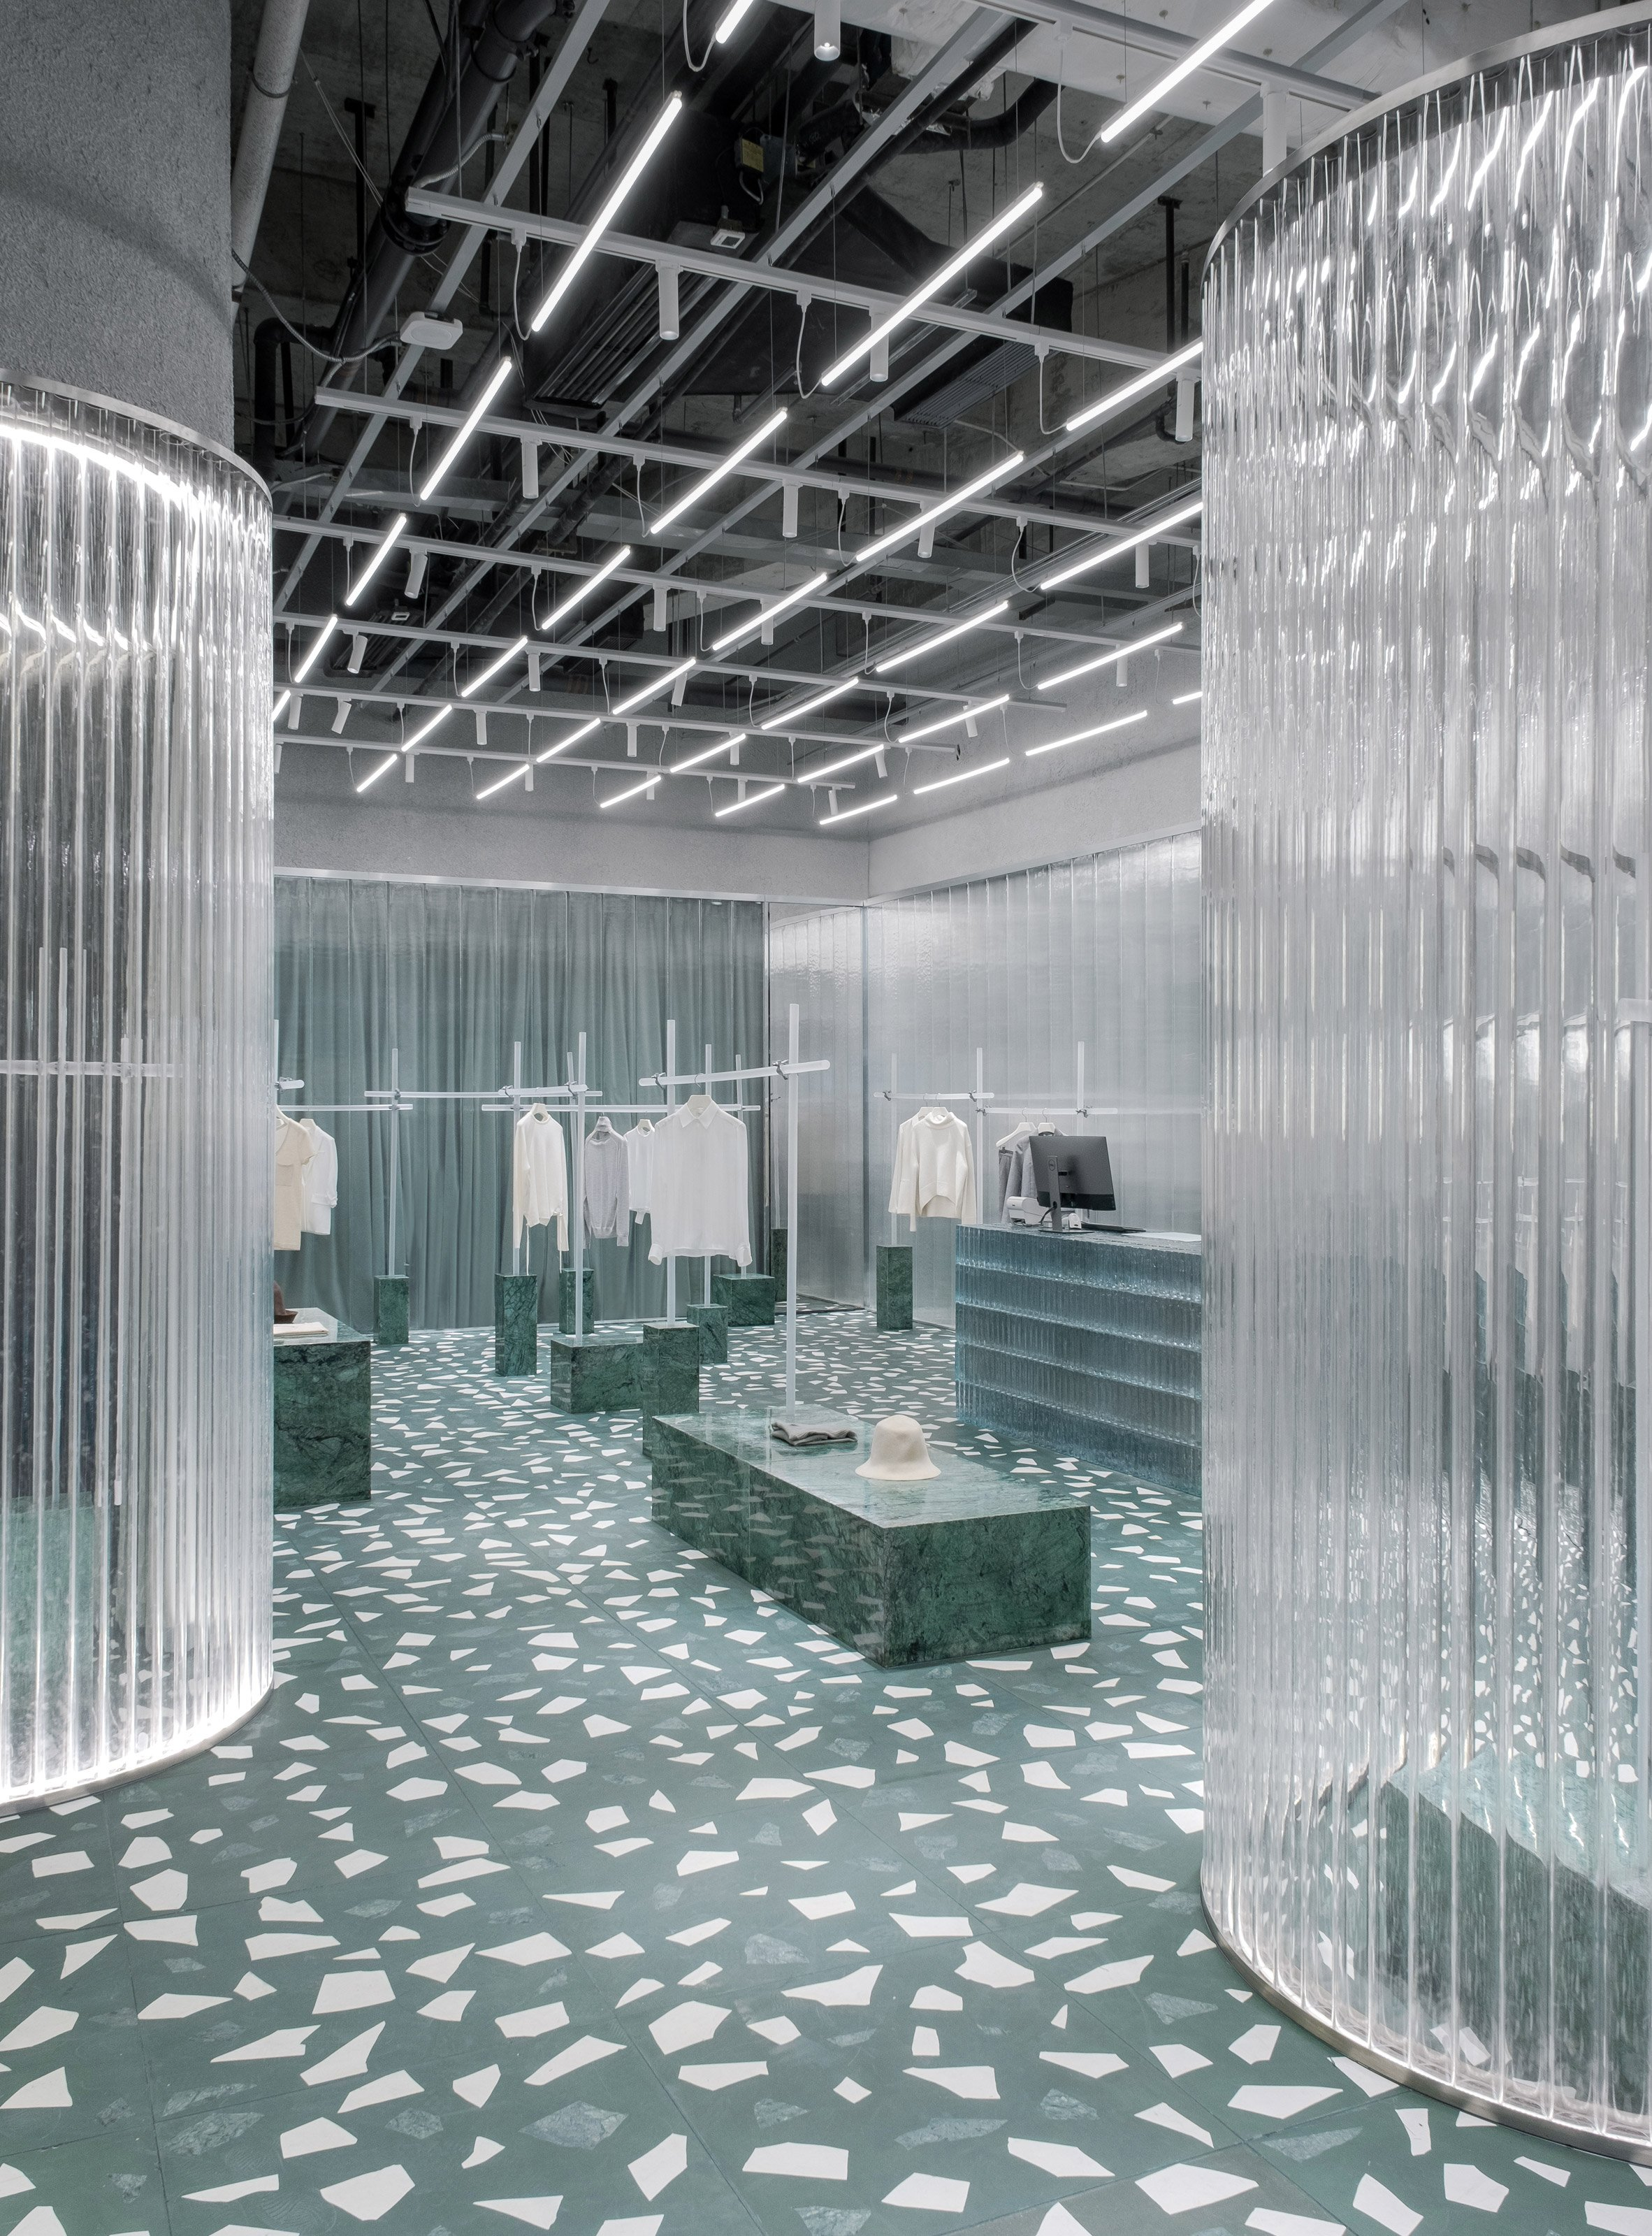 Geijoeng store in China, designed by Studio 10